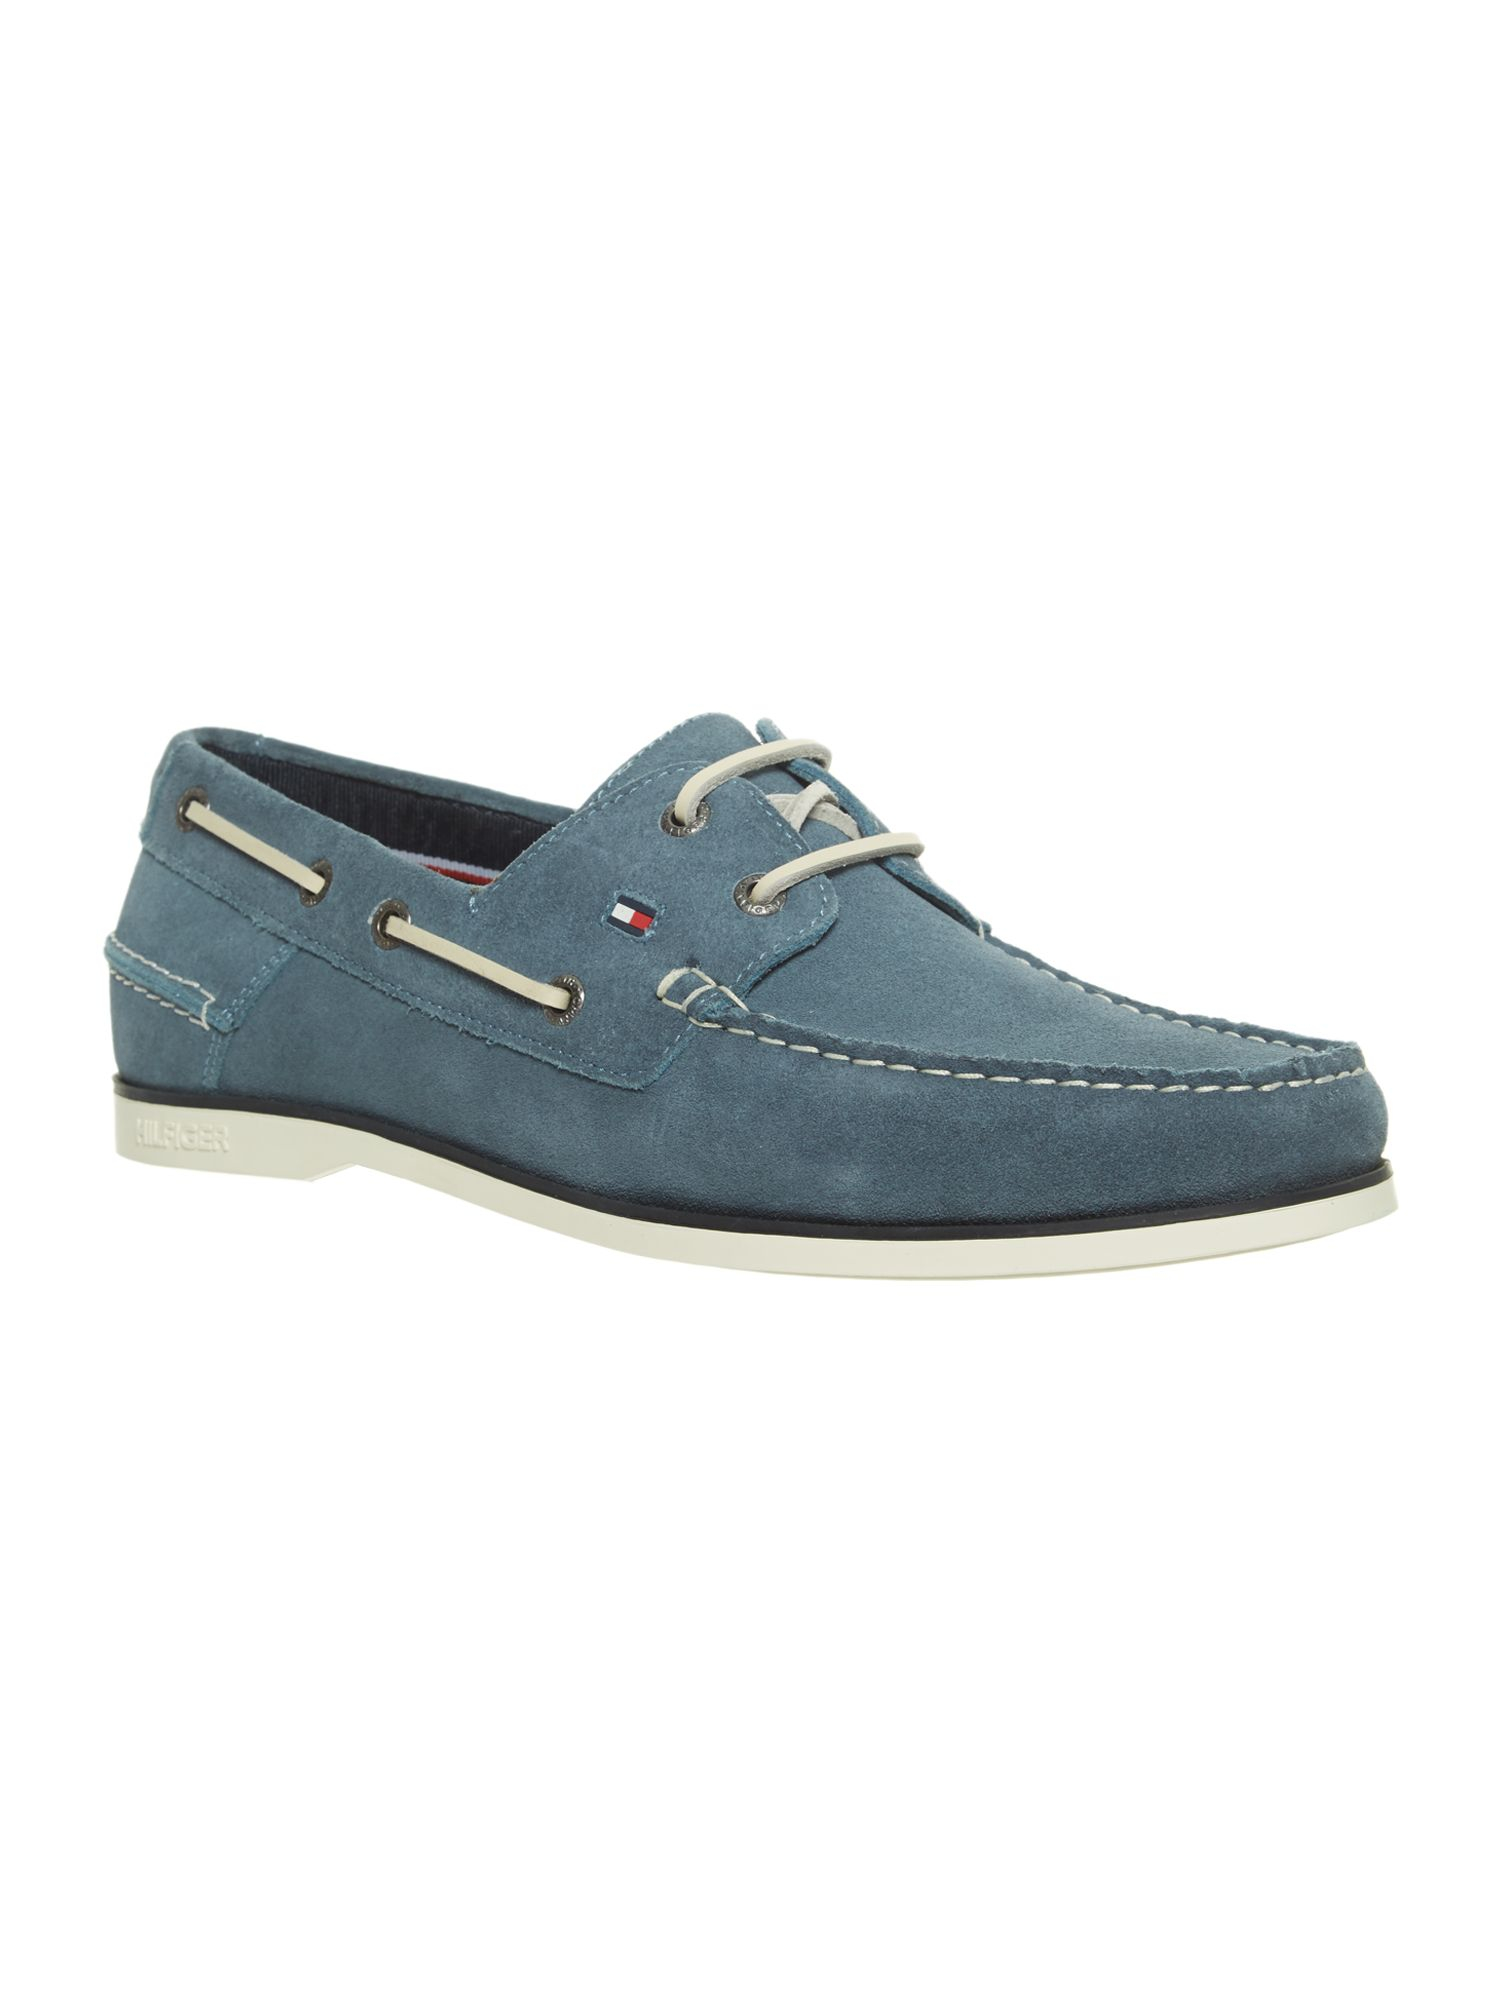 hilfiger classic boat shoes in blue for lyst